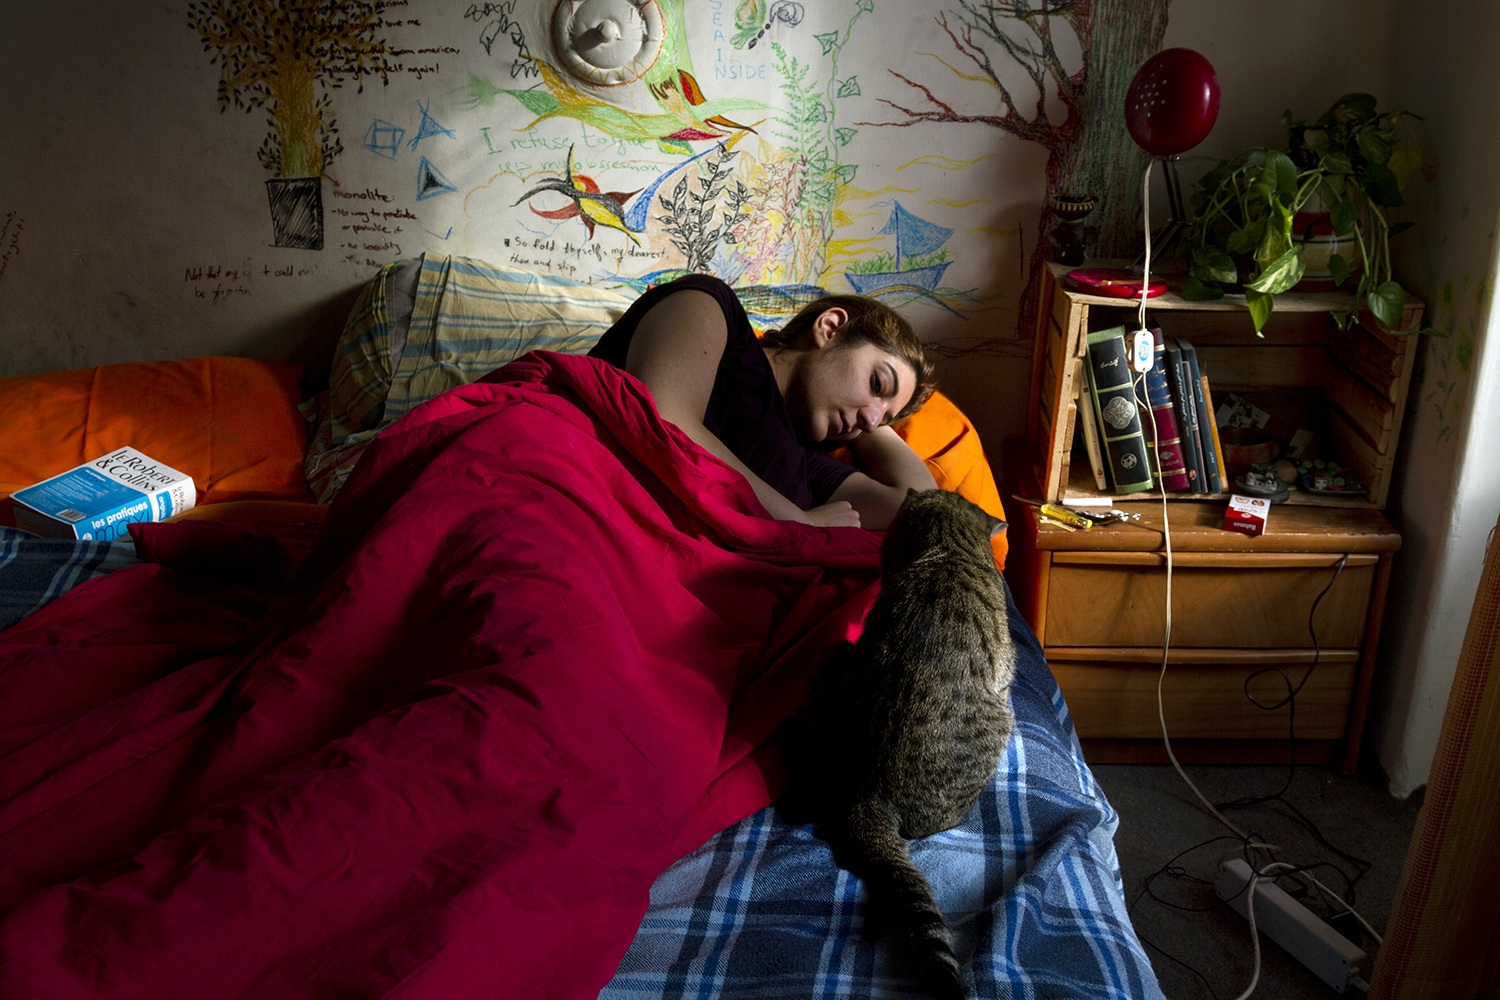 The blind-06 : 'The blind' is a photo book about 12 Iranian women who live alone. Although there is social stigma,the number of single women who choose this lifestyle is growing these days.